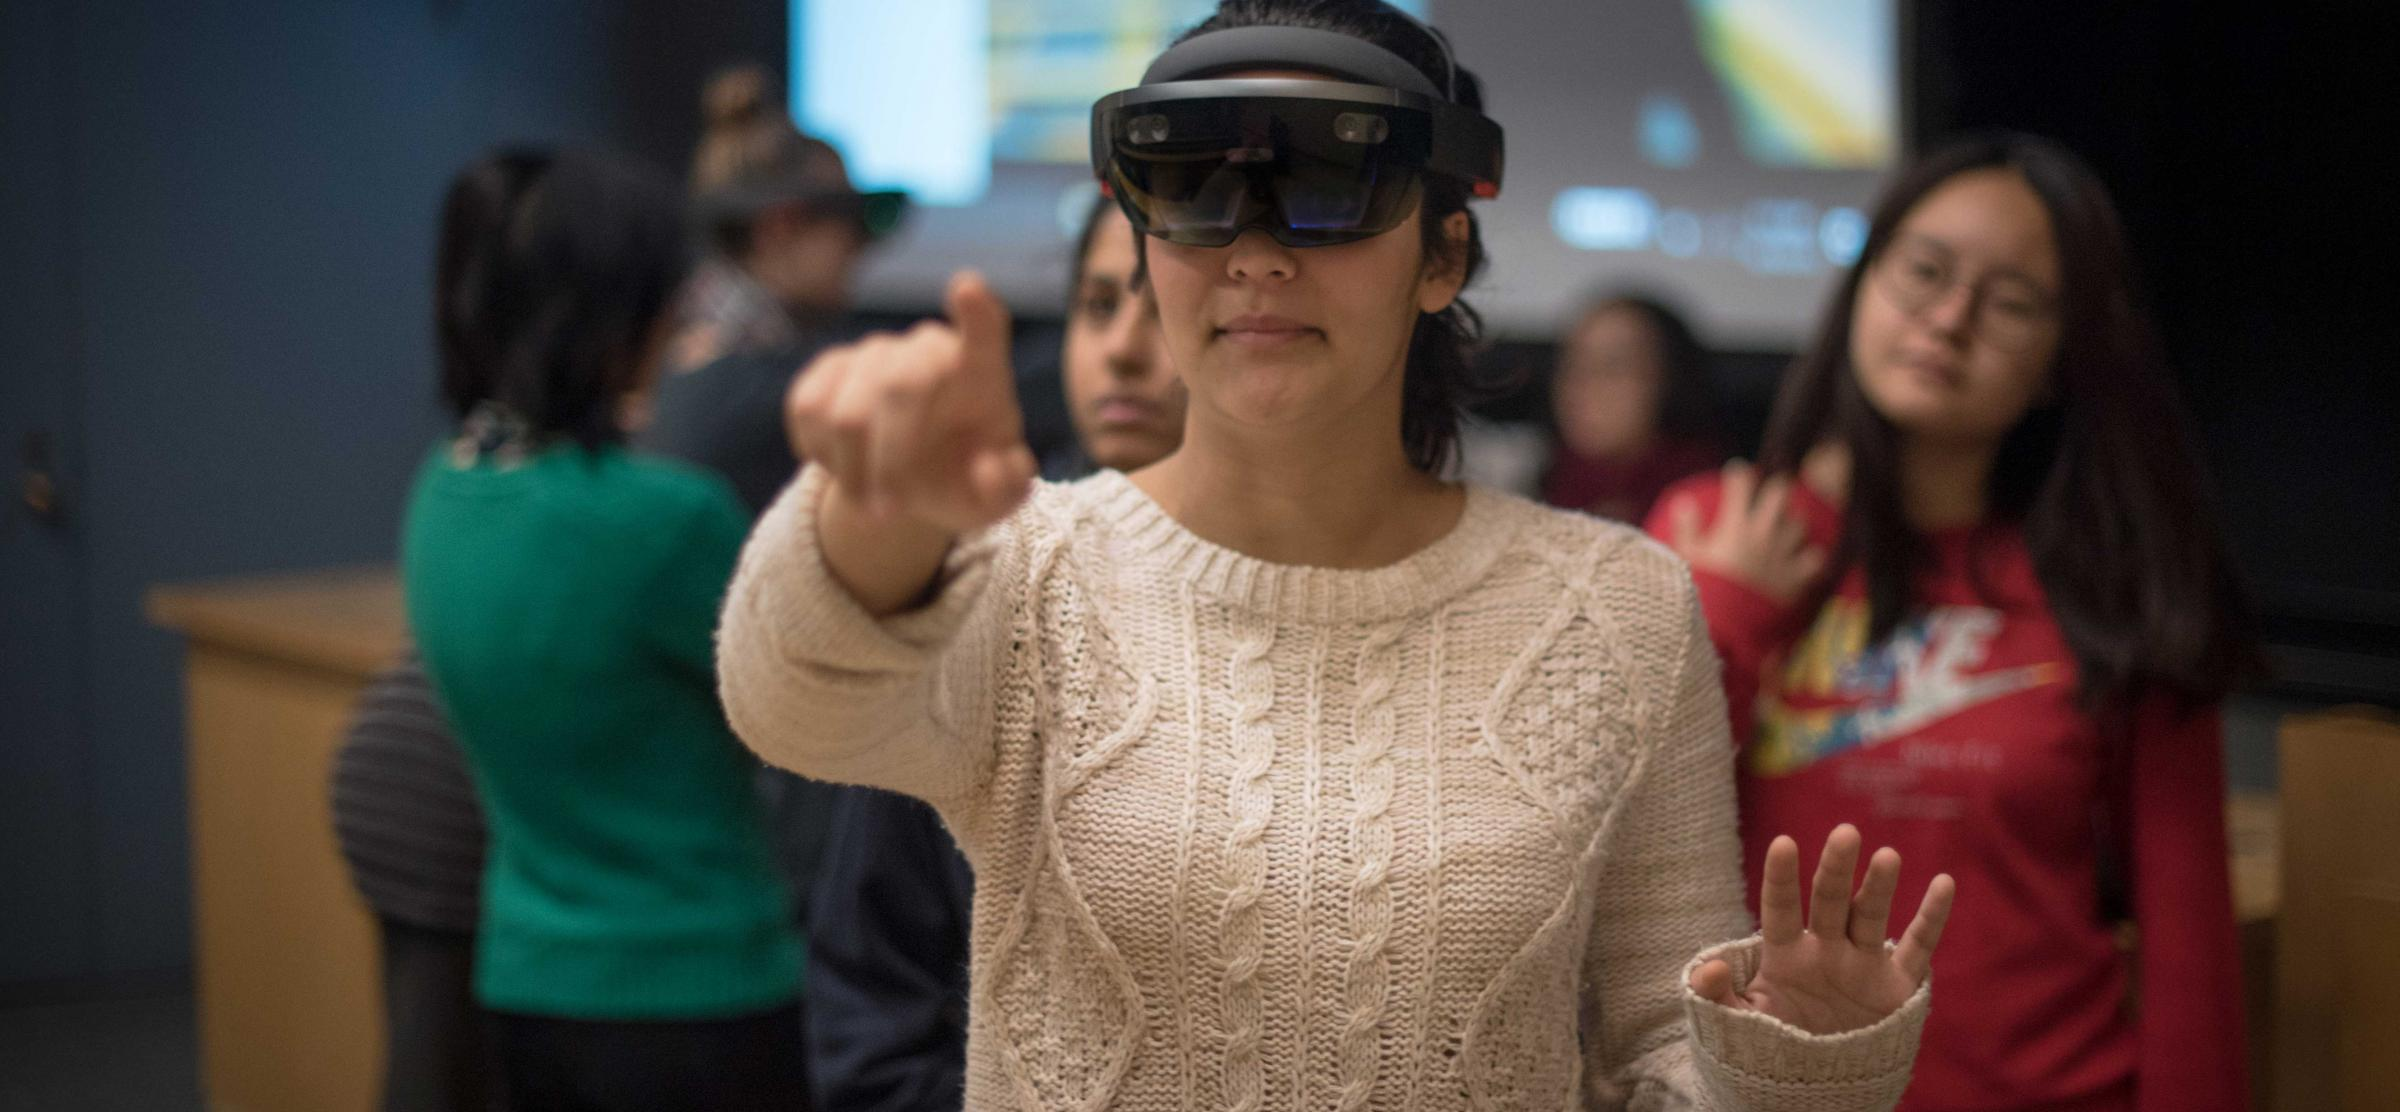 Tech Talk: The HoloLens and Mixed Reality in the Classroom